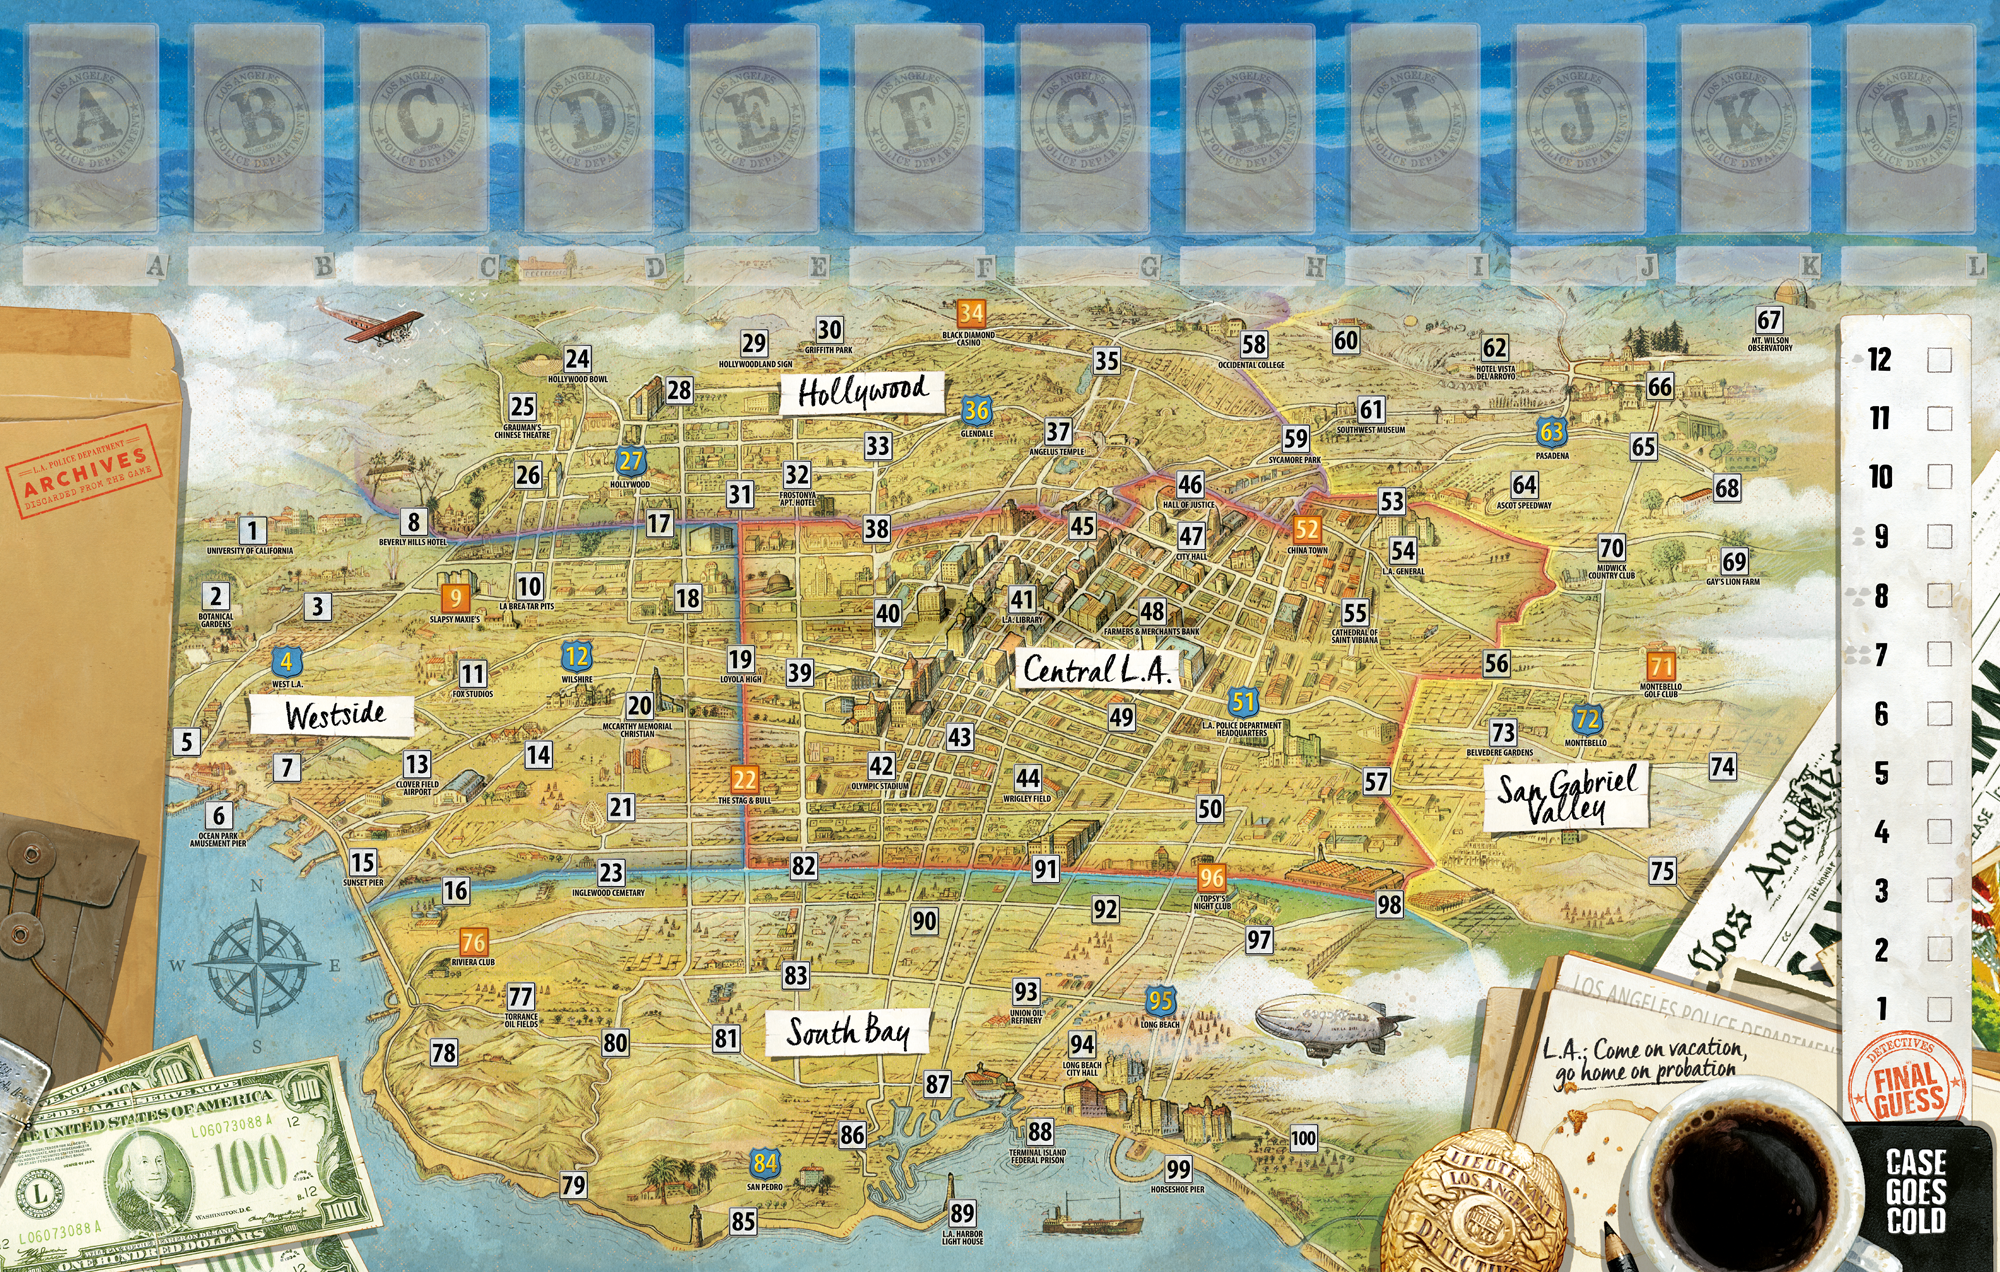 The game board is a beautiful, gorgeously detailed map of Los Angeles, originally created by K.M. Lueschner with treatments by renowned board game artist Vincent Dutrait.